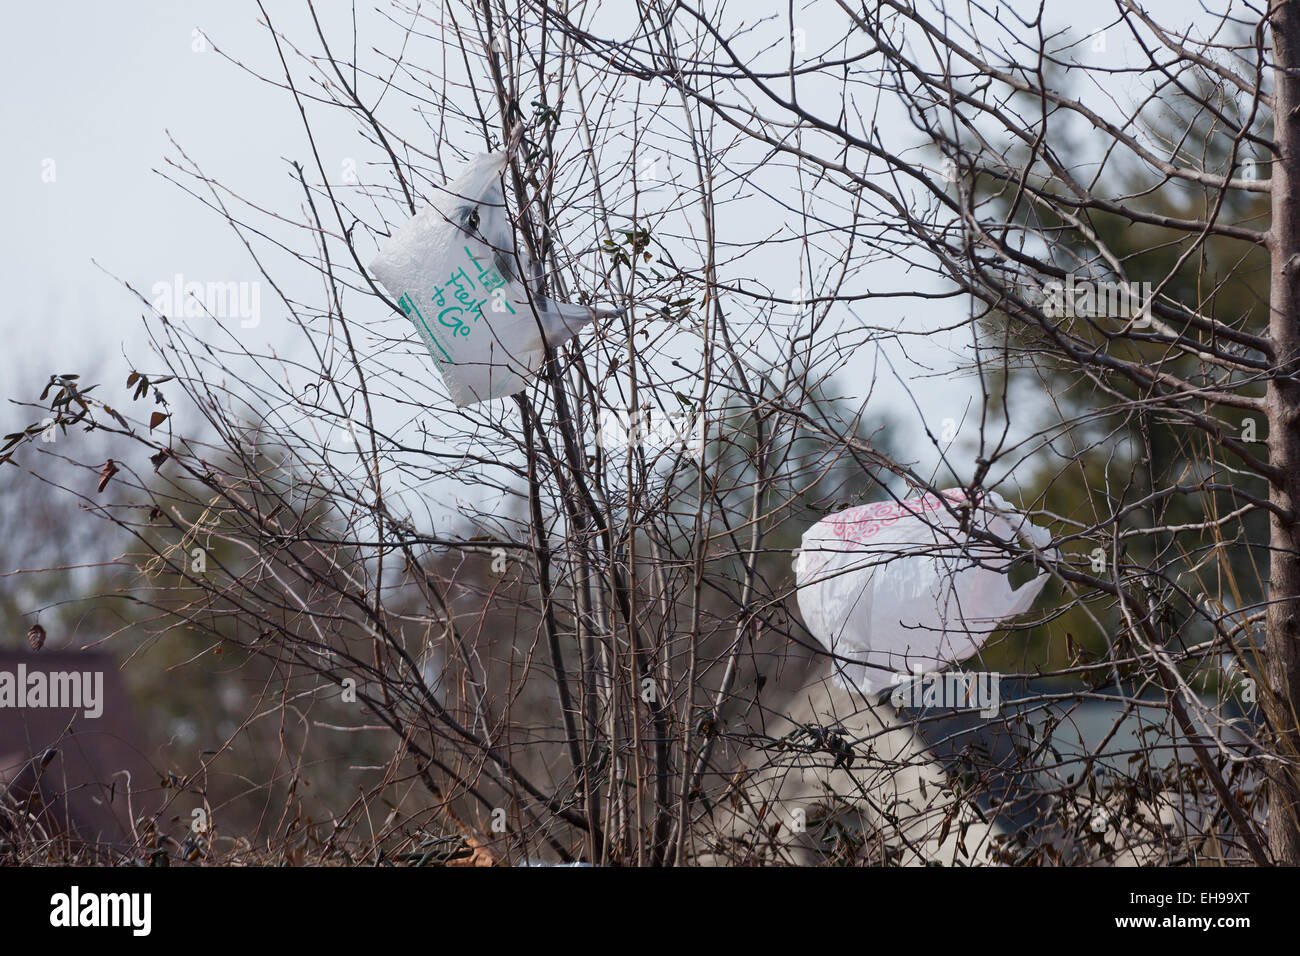 Plastic grocery bags caught on bushes - USA - Stock Image